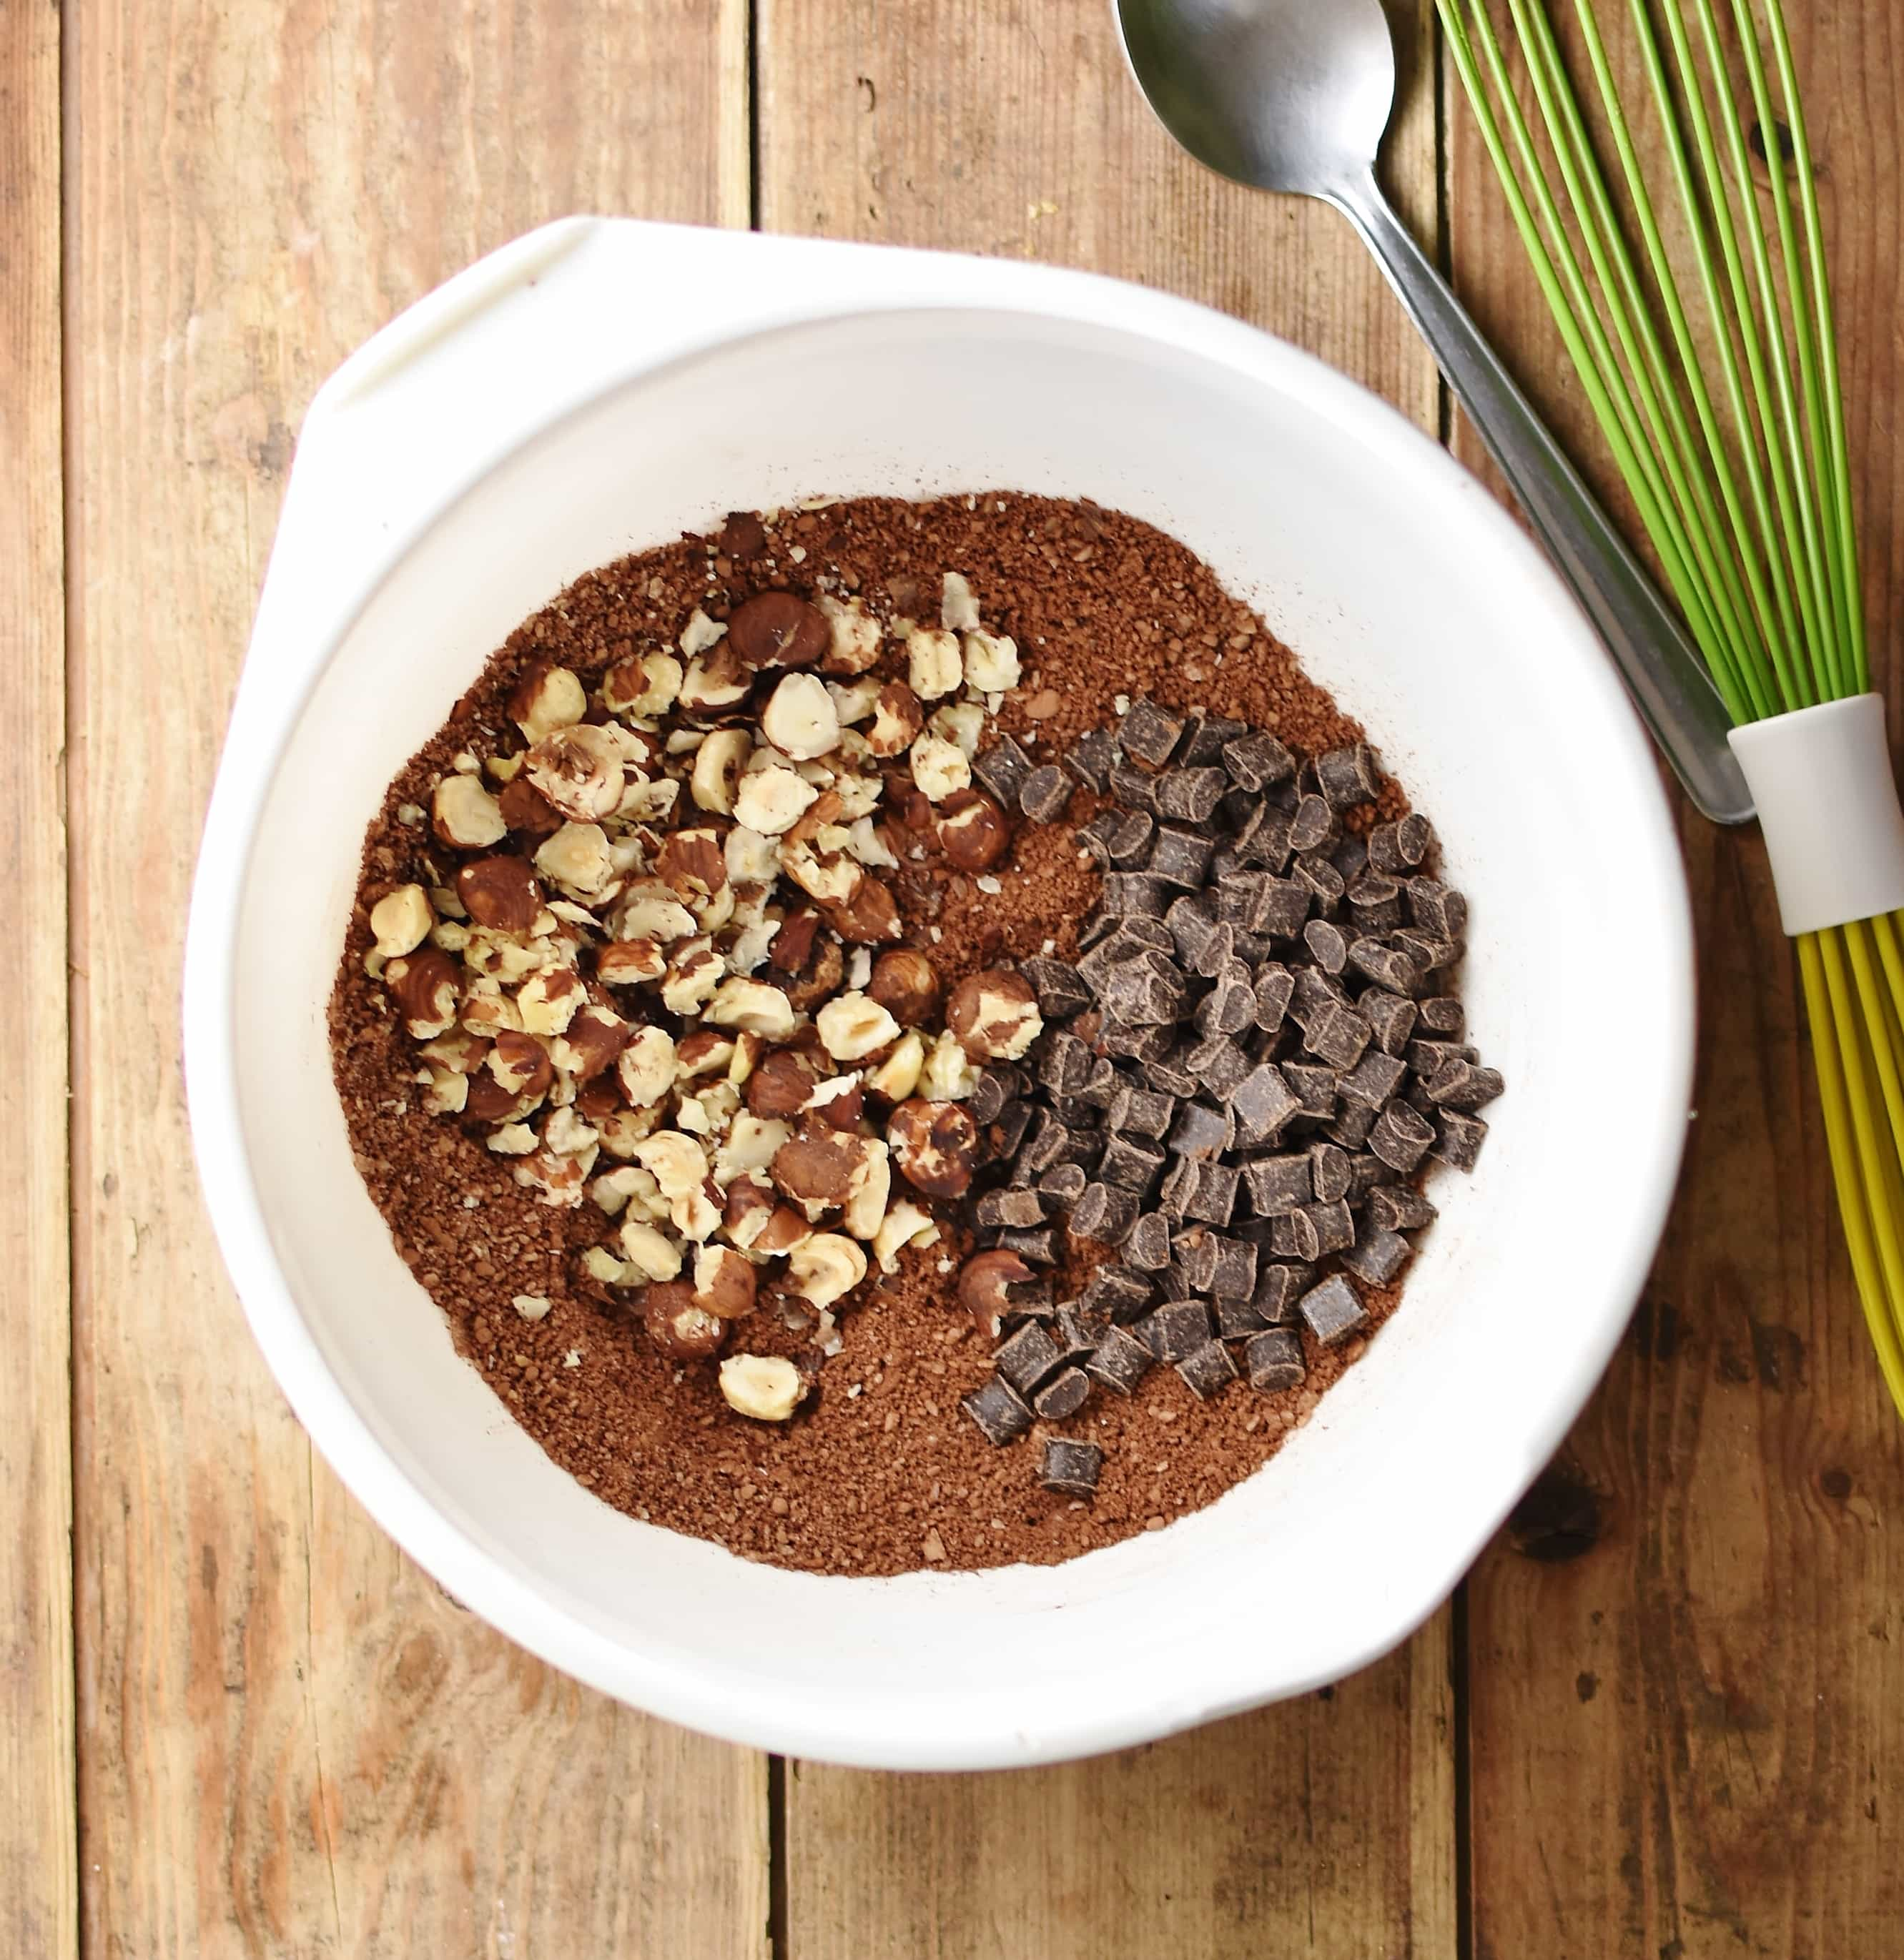 Cocoa mixture with crushed nuts and chocolate chunks inside large white bowl with spoon and green whisk in top right.